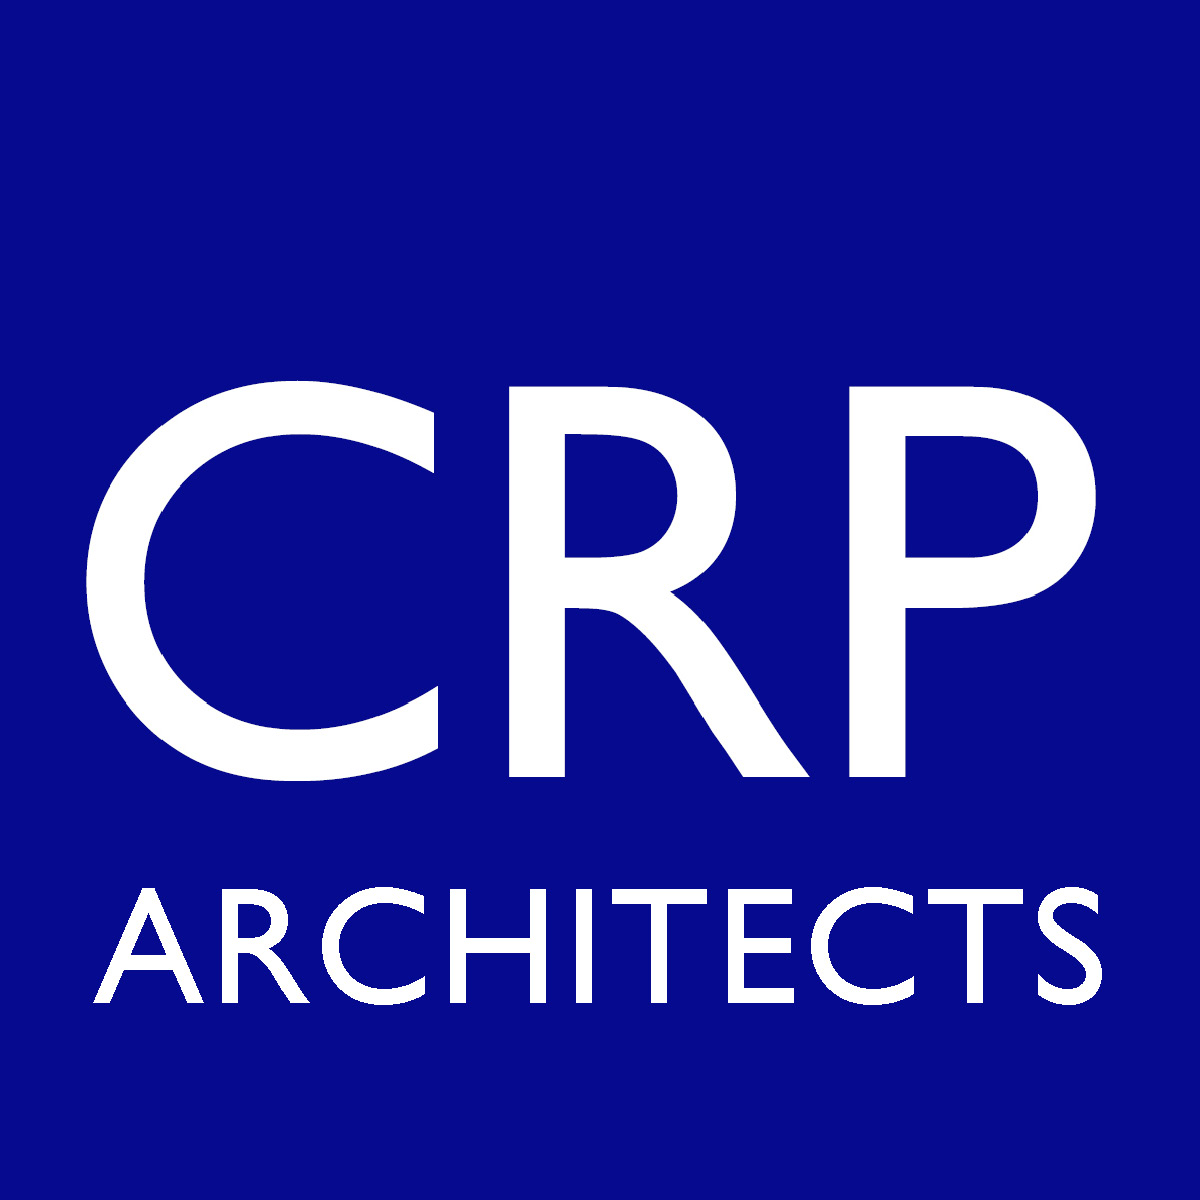 CRP Architects, PC